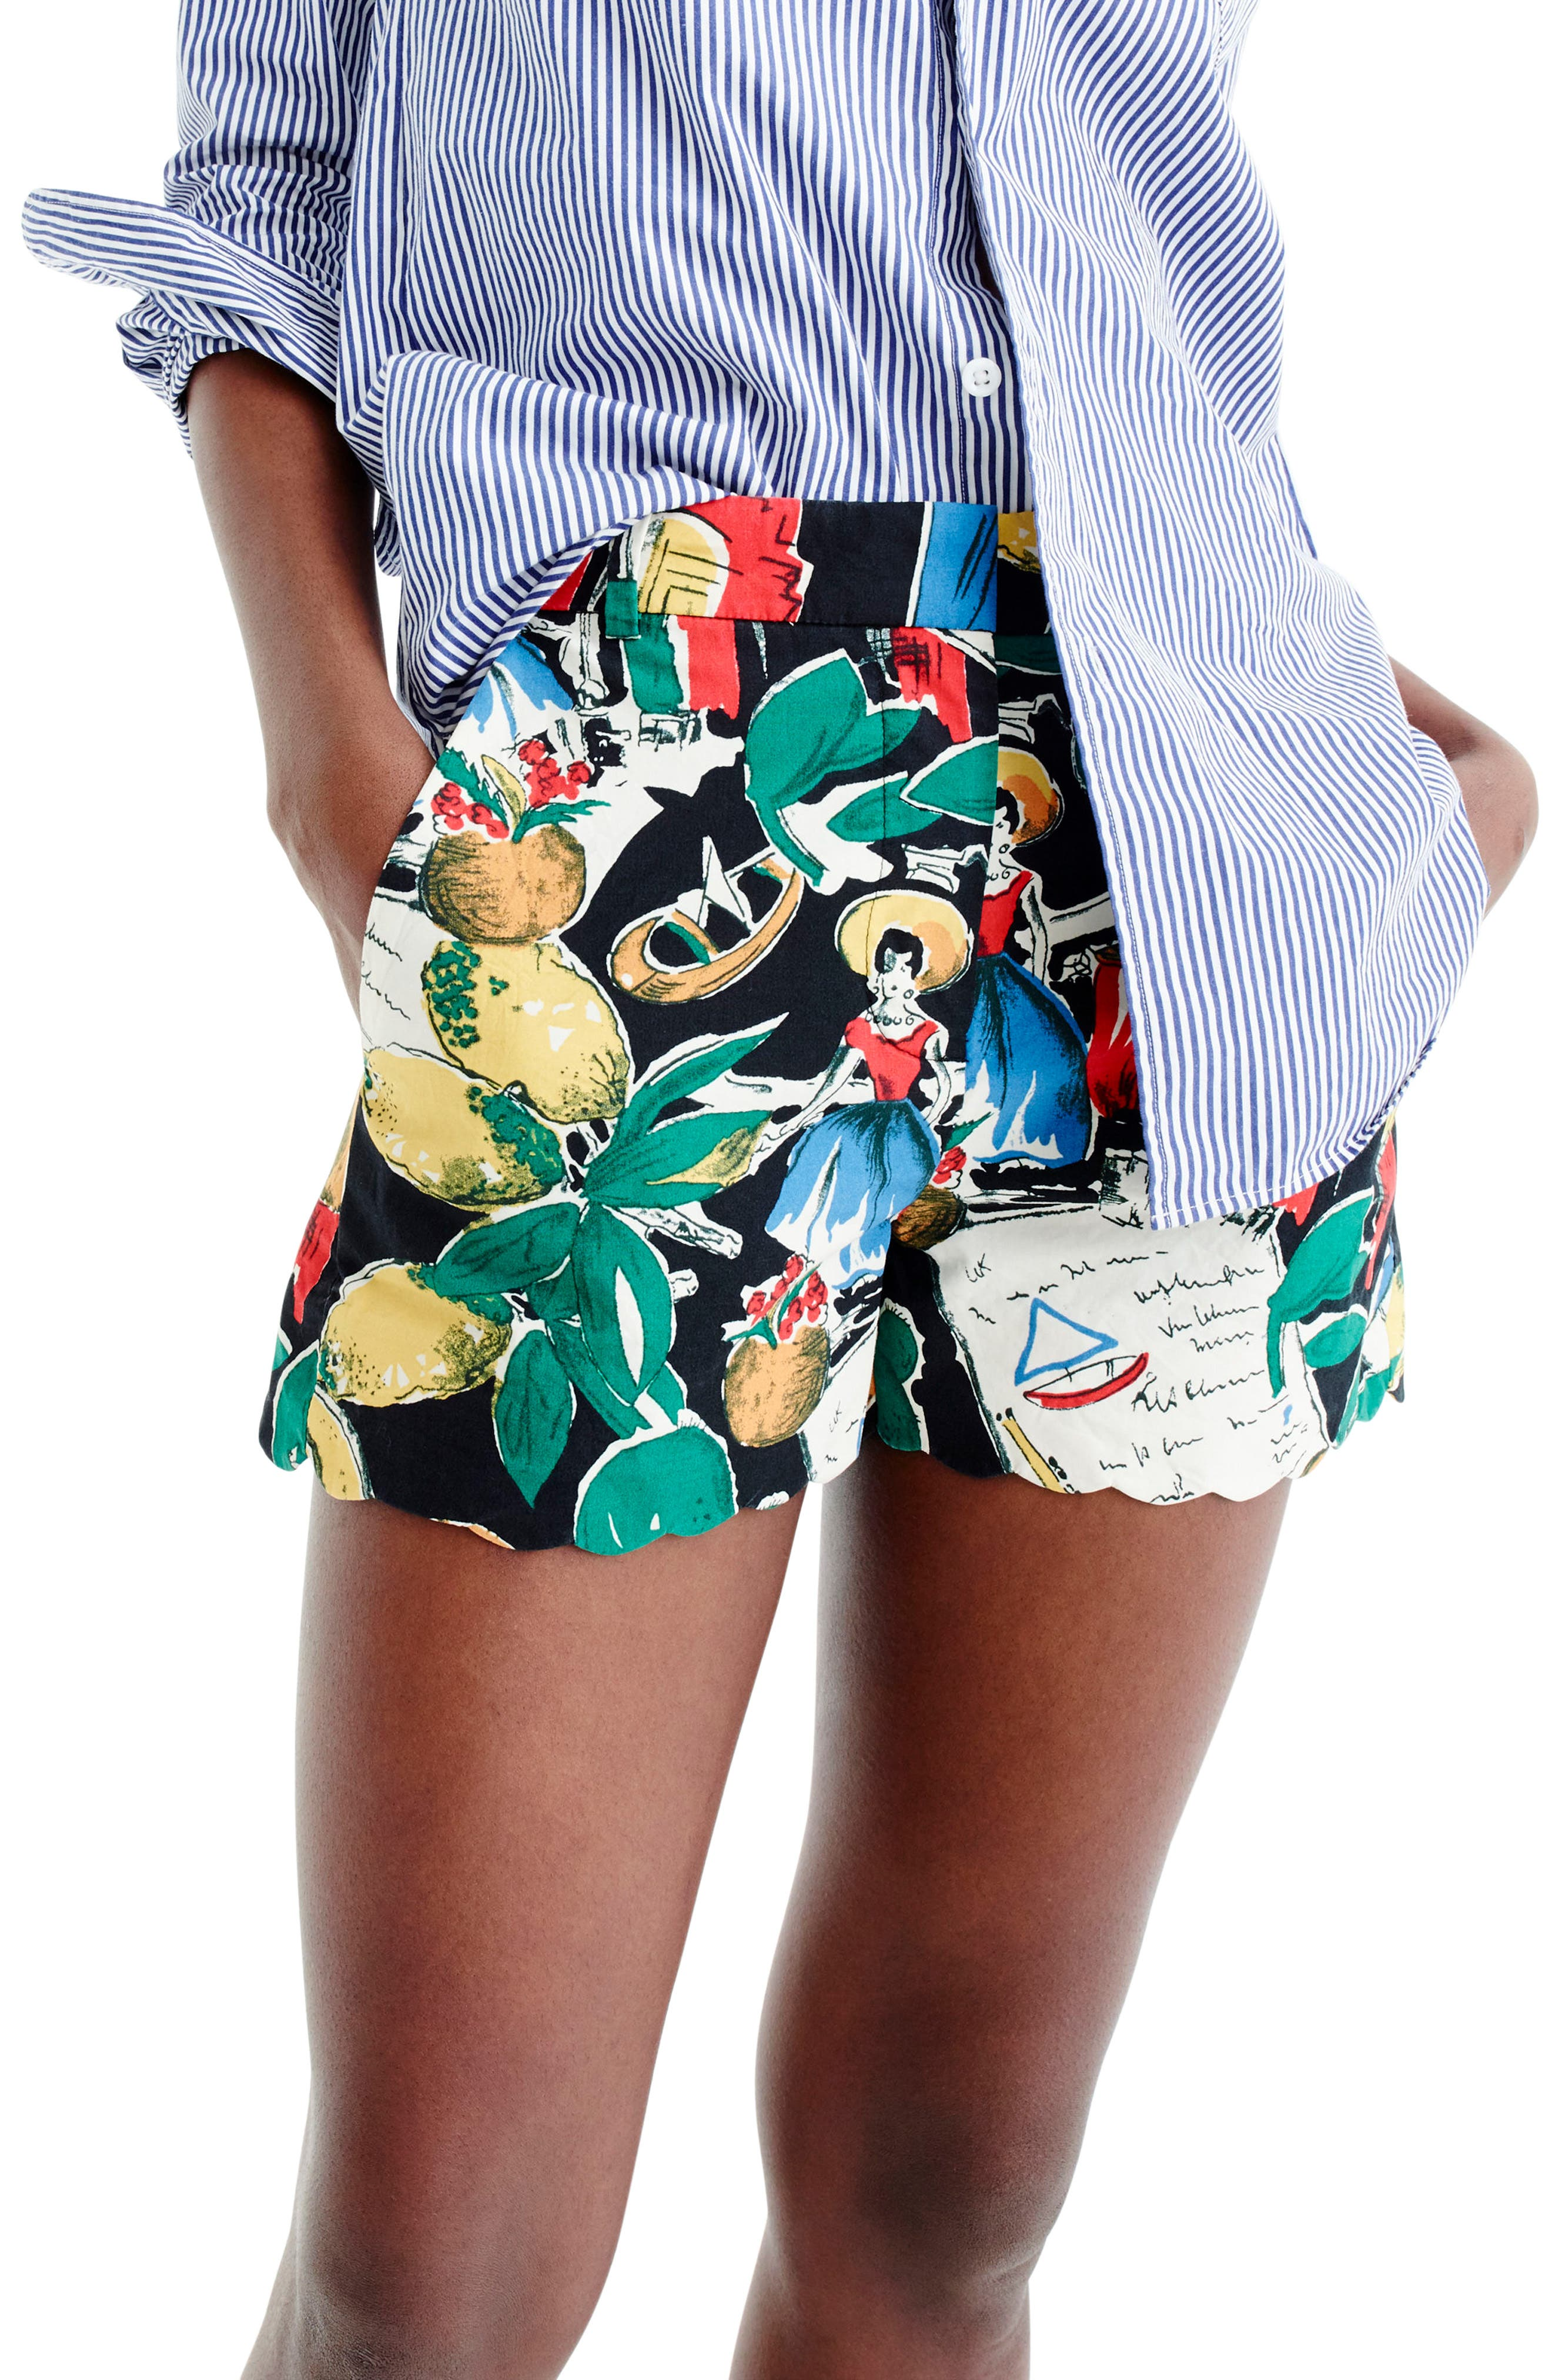 J.Crew Postcard Print High Waist Shorts